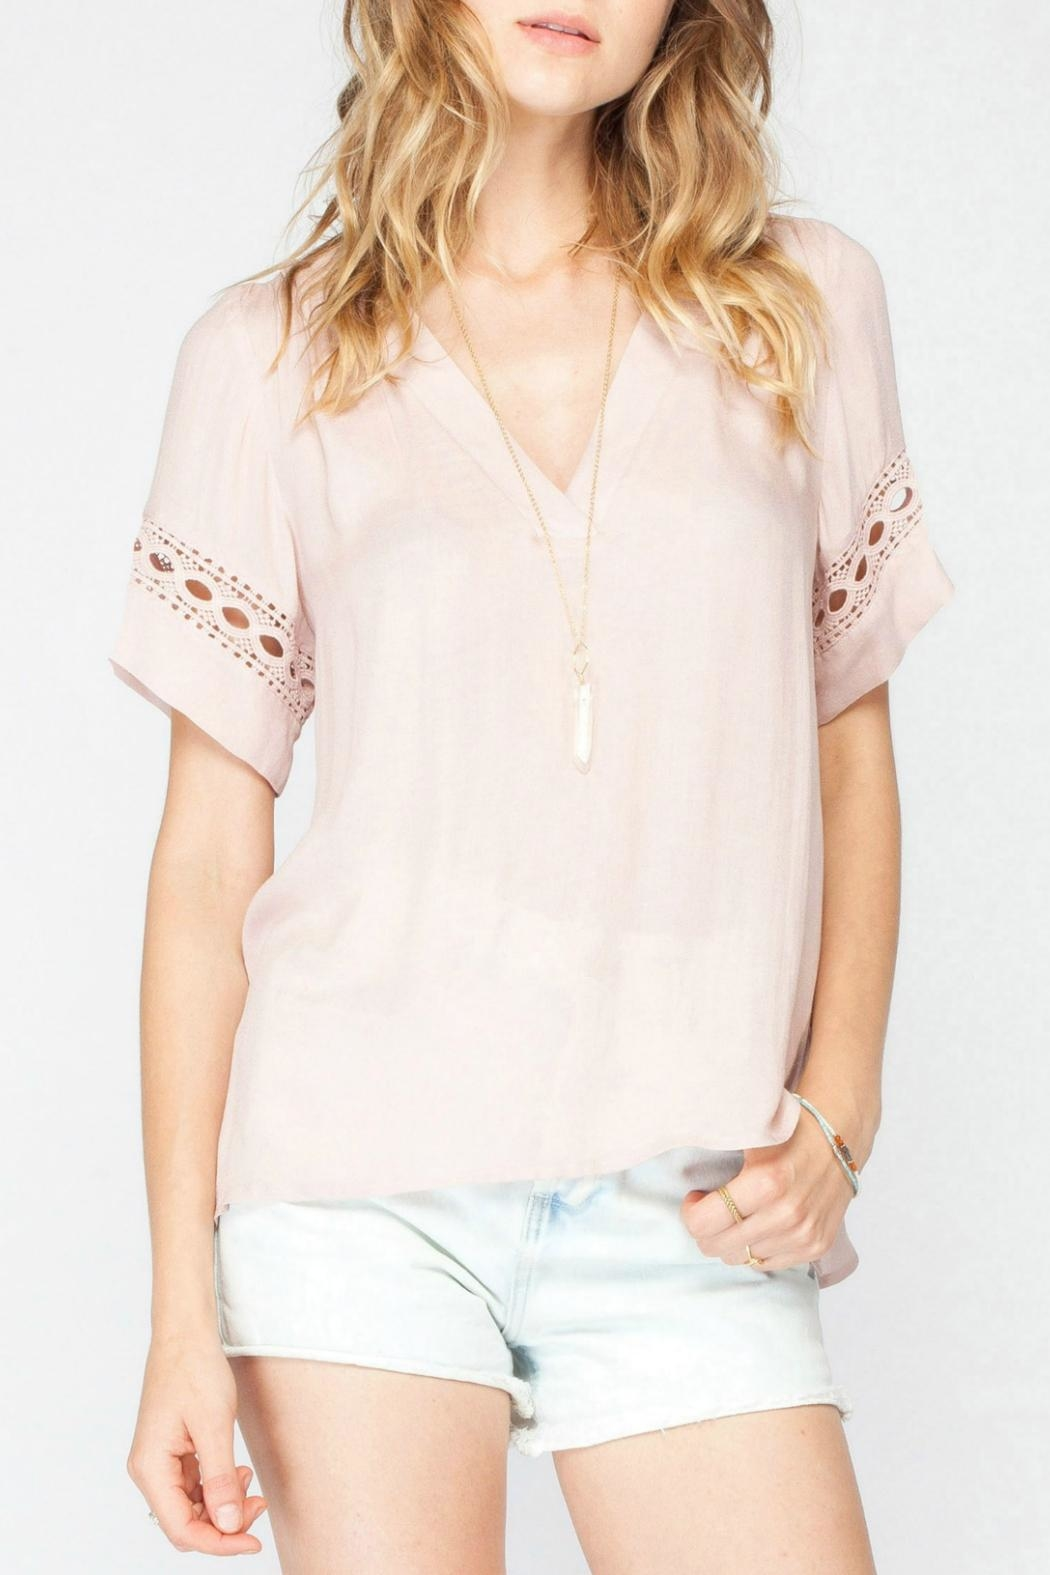 Gentle Fawn Crochet Pink Top - Main Image